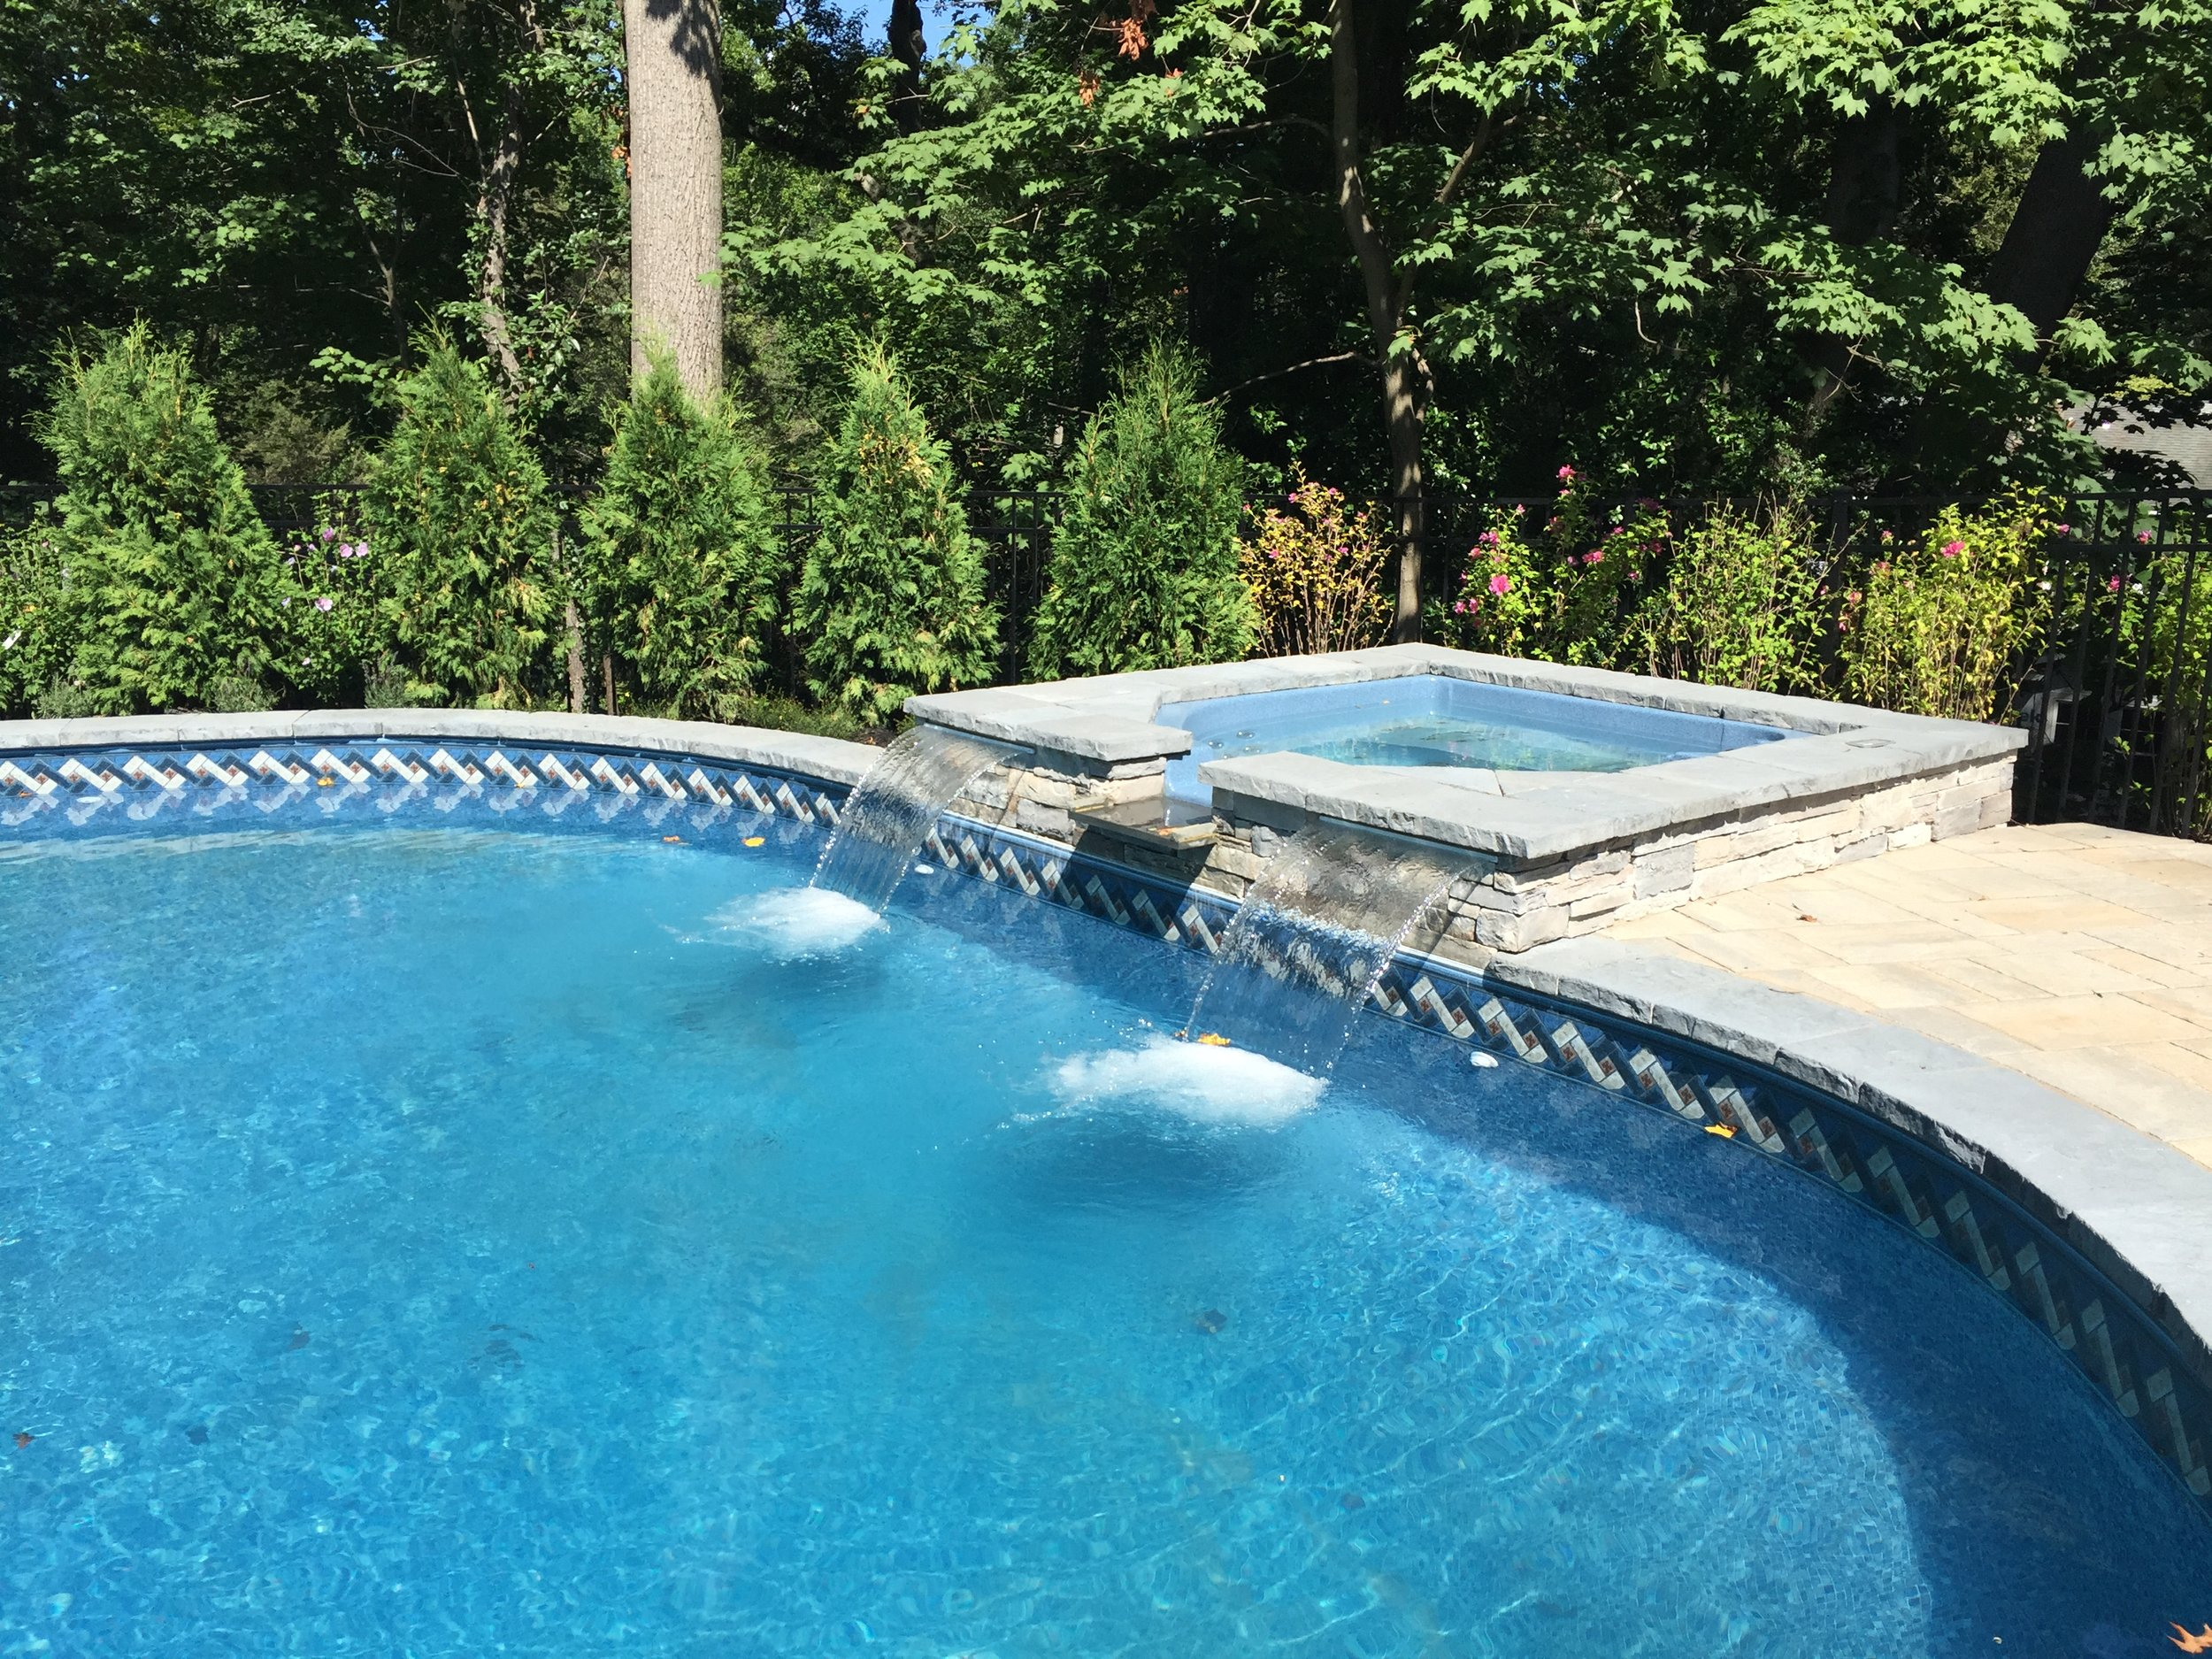 Professional pool waterfall design company in Long Island, NY